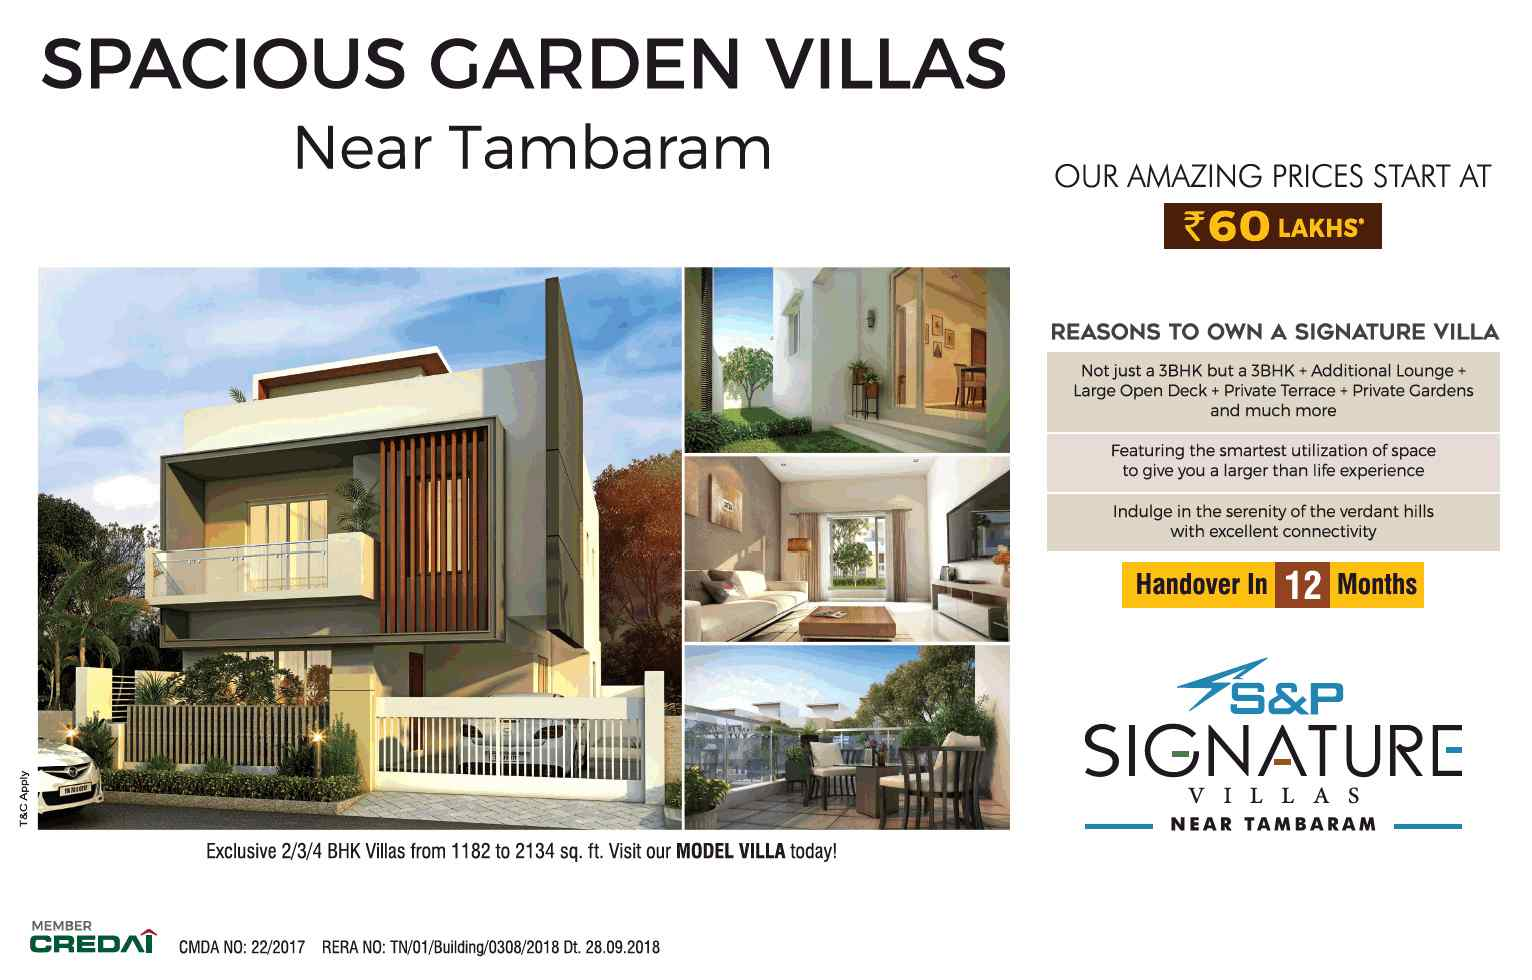 Book spacious garden villas Rs 60 Lakhs at S P Signature Villas in Chennai